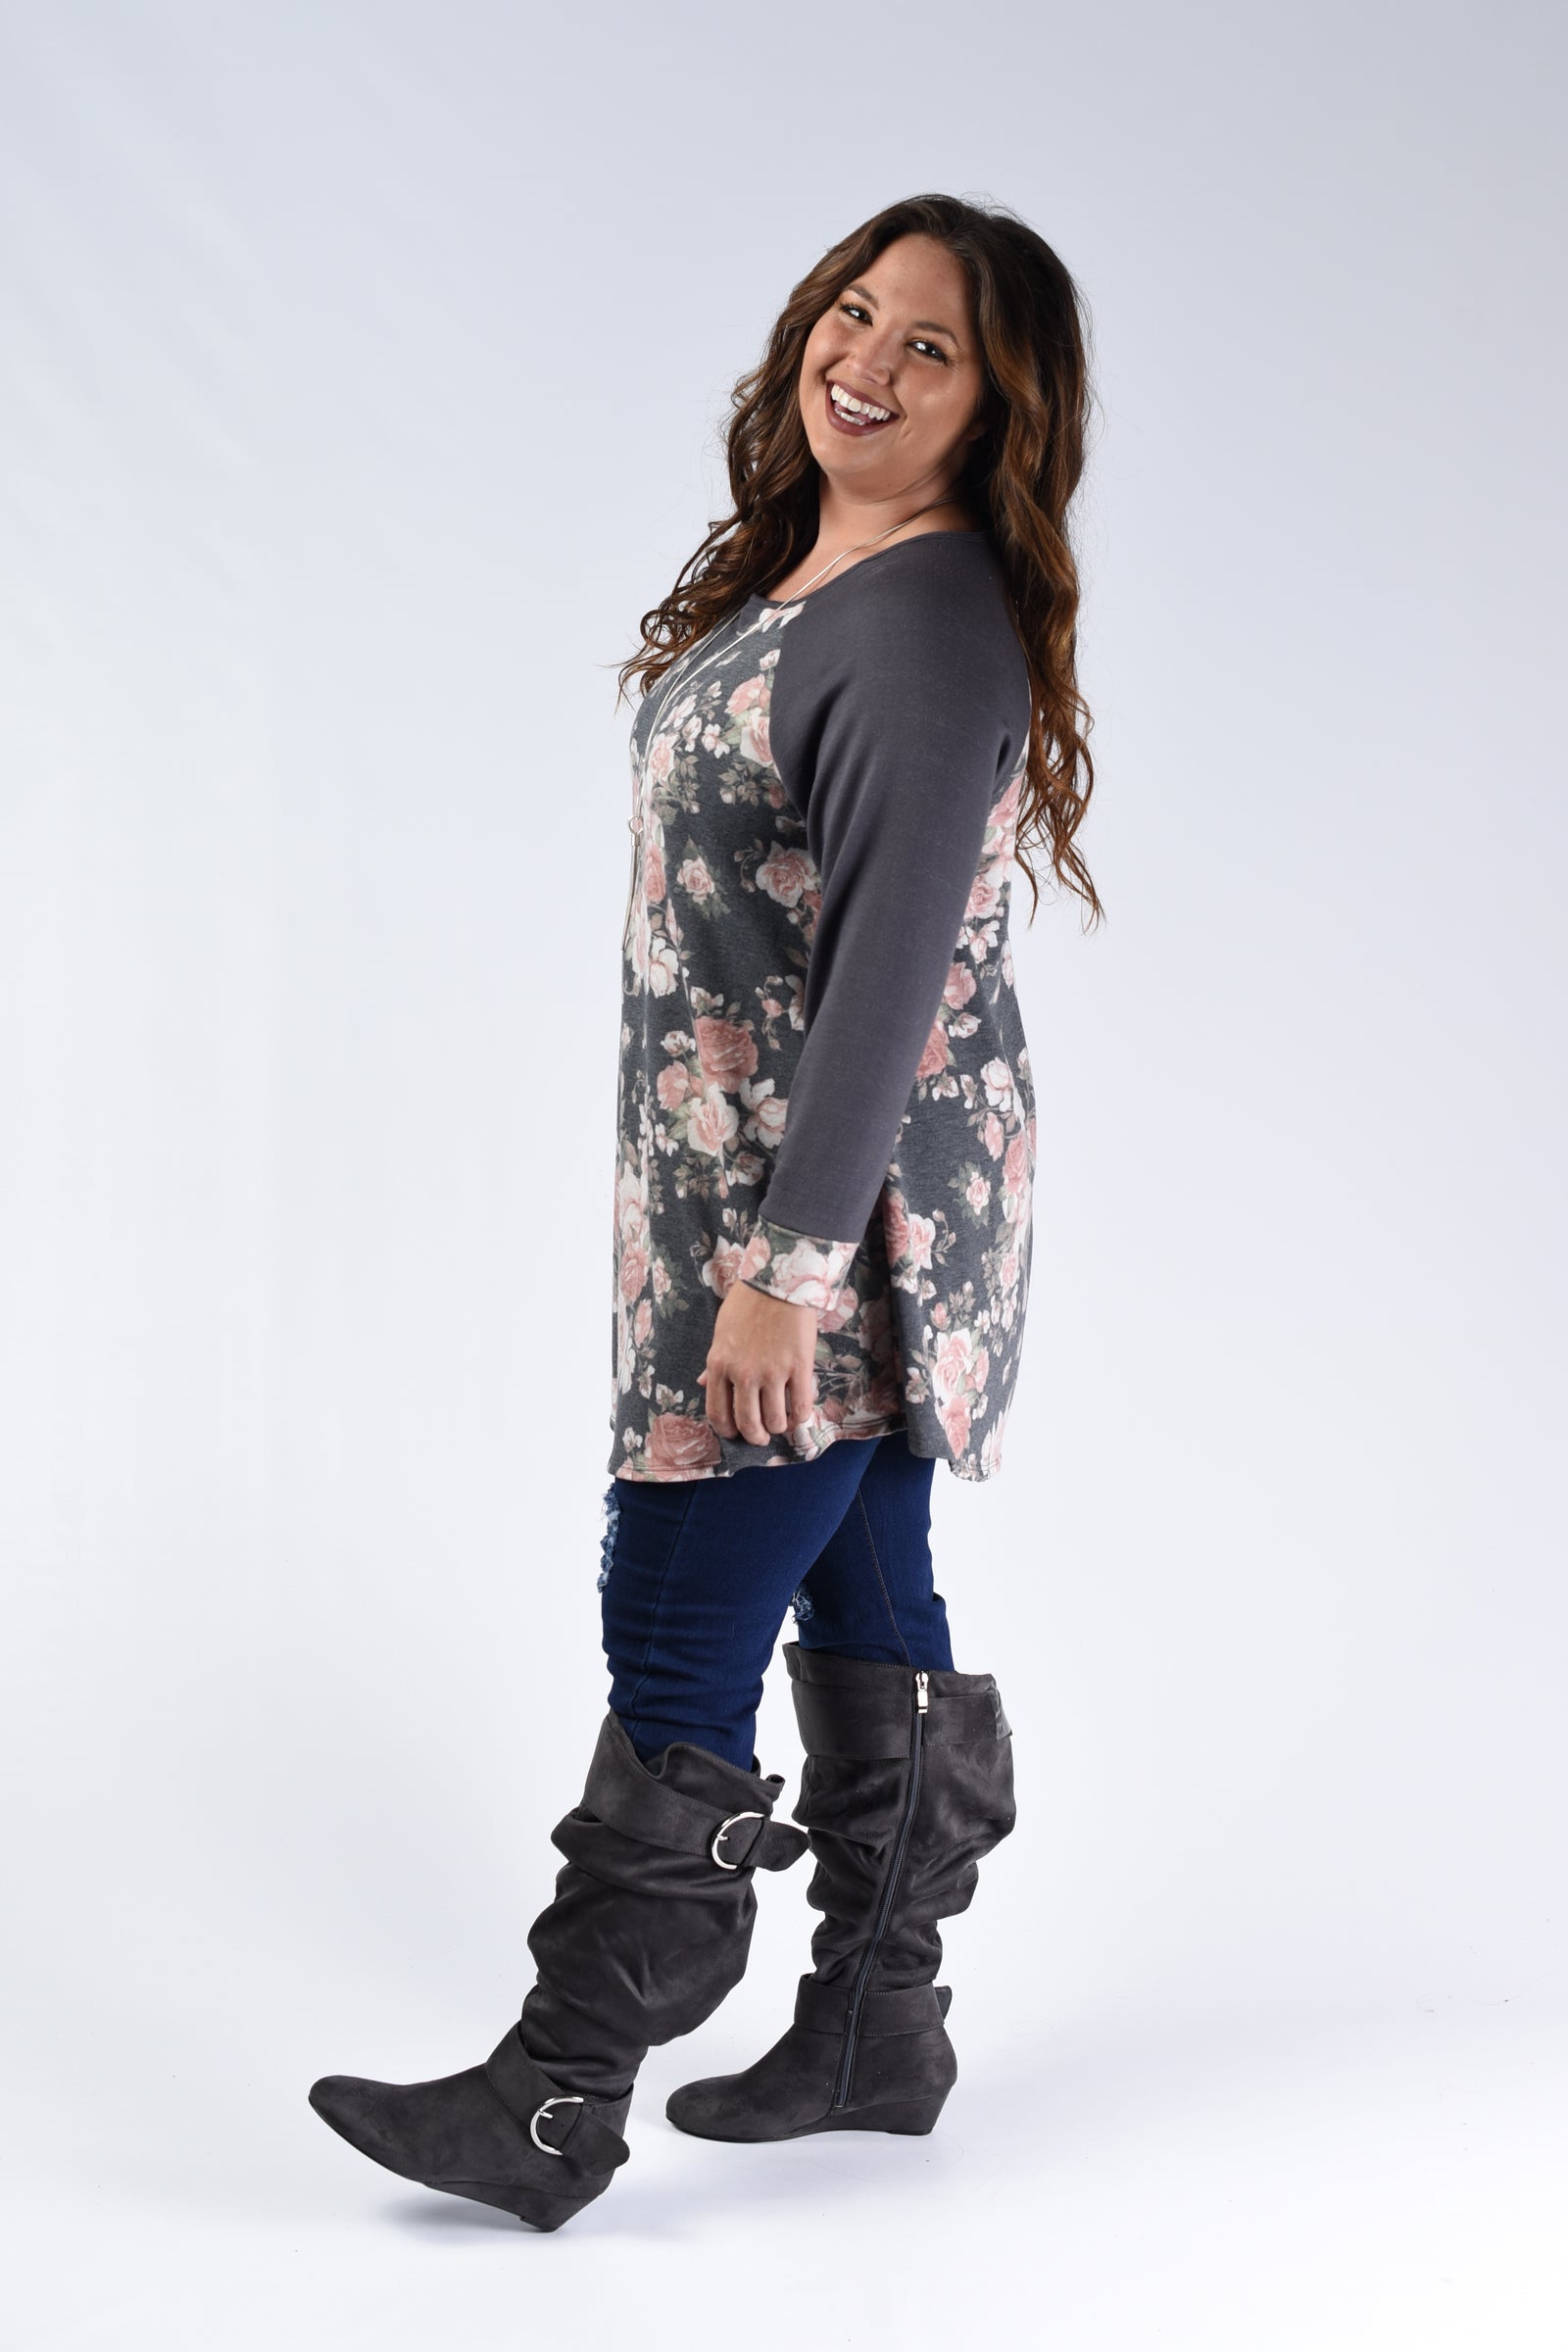 Charcoal Floral Top - www.mycurvystore.com - Curvy Boutique - Plus Size